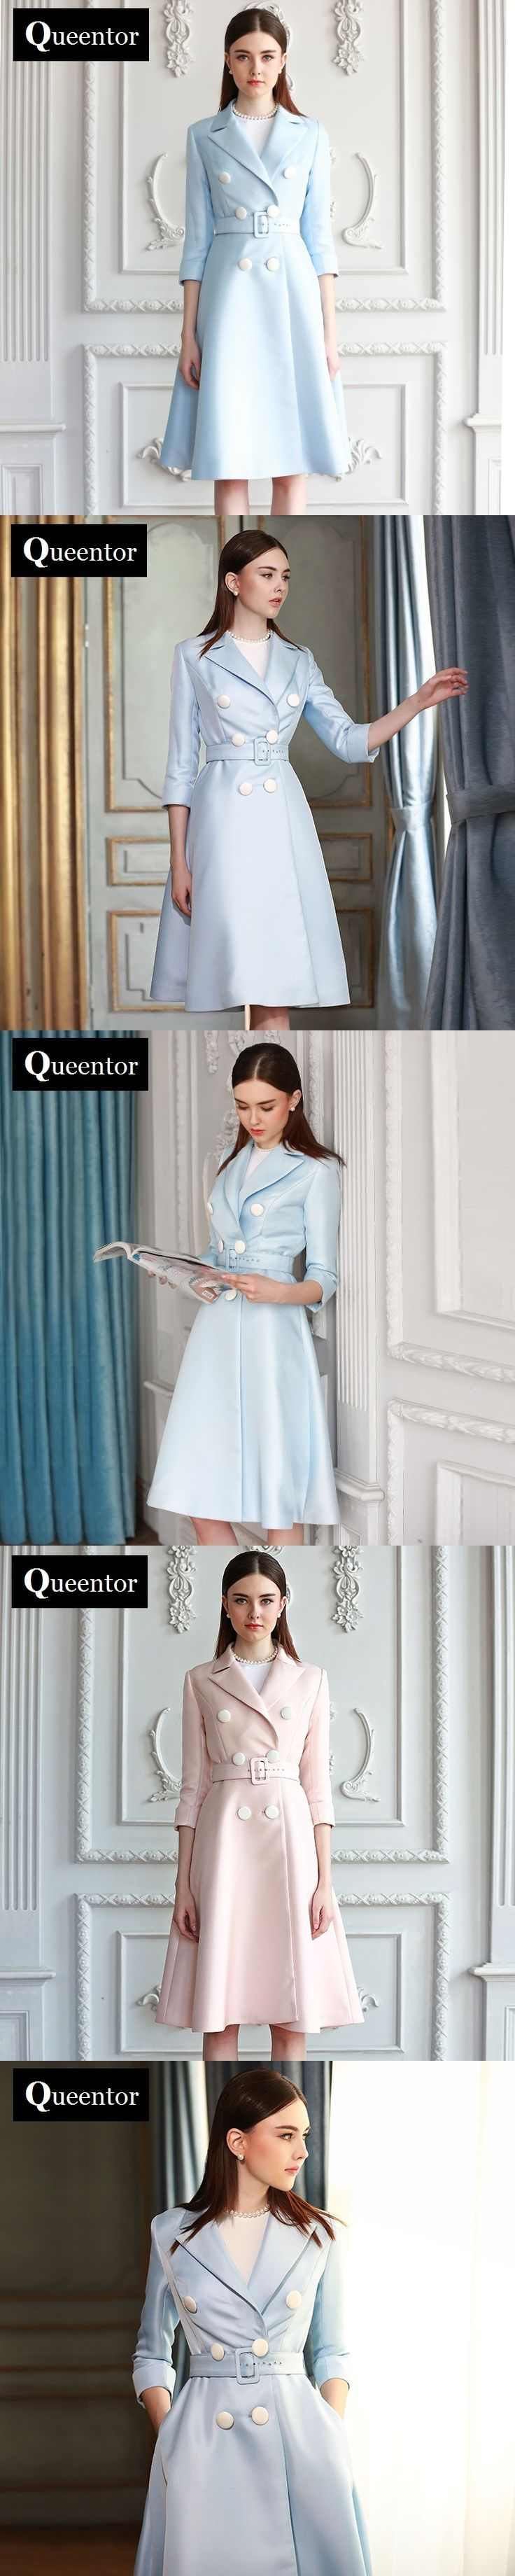 QUEENTOR original 2017 brand designer outerwear autumn vintage casual solid trench coat for women